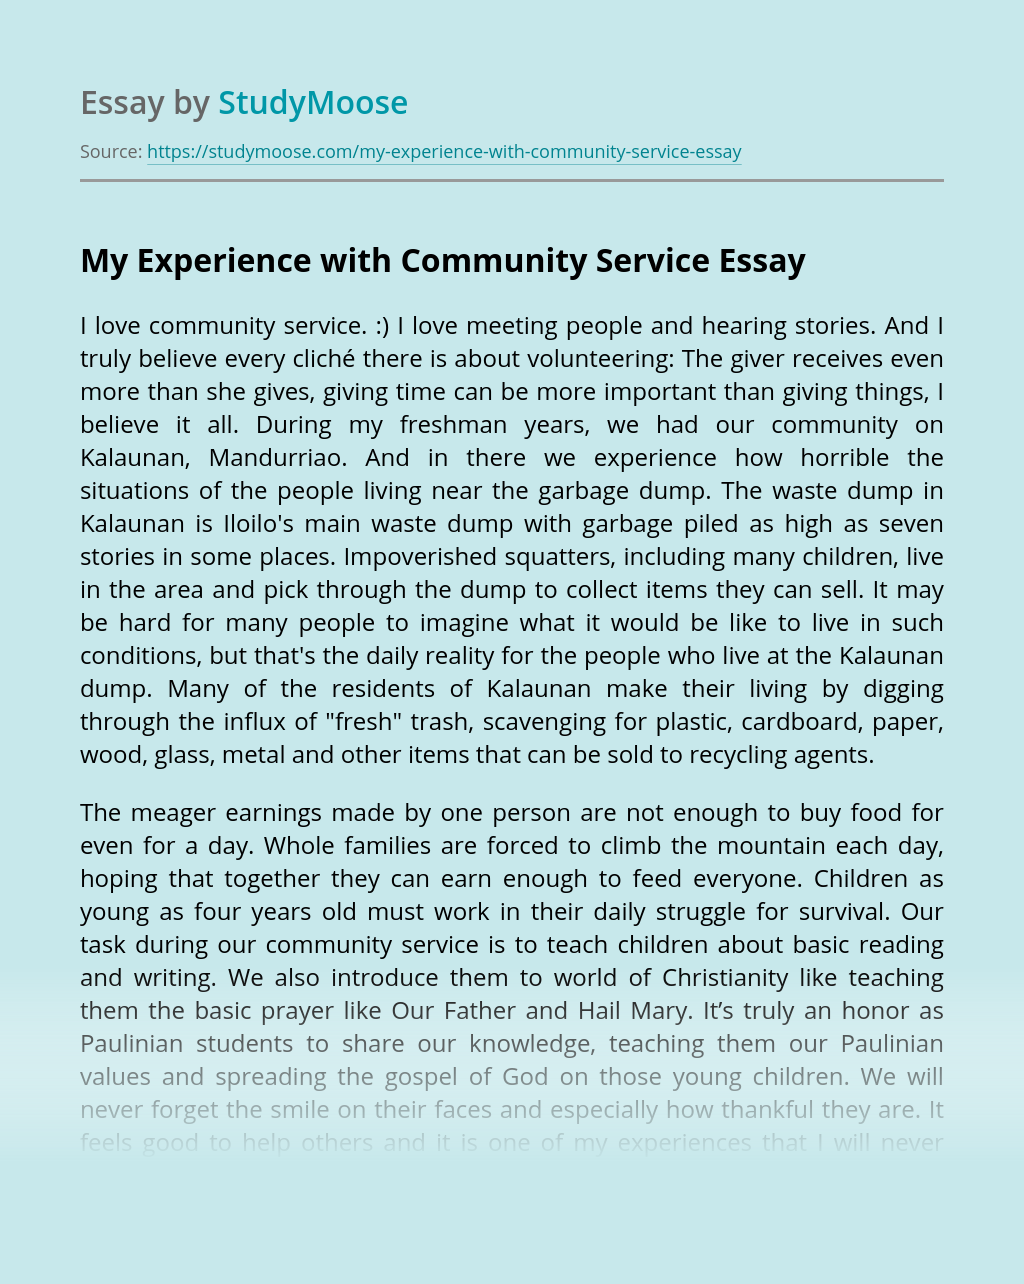 My Experience with Community Service